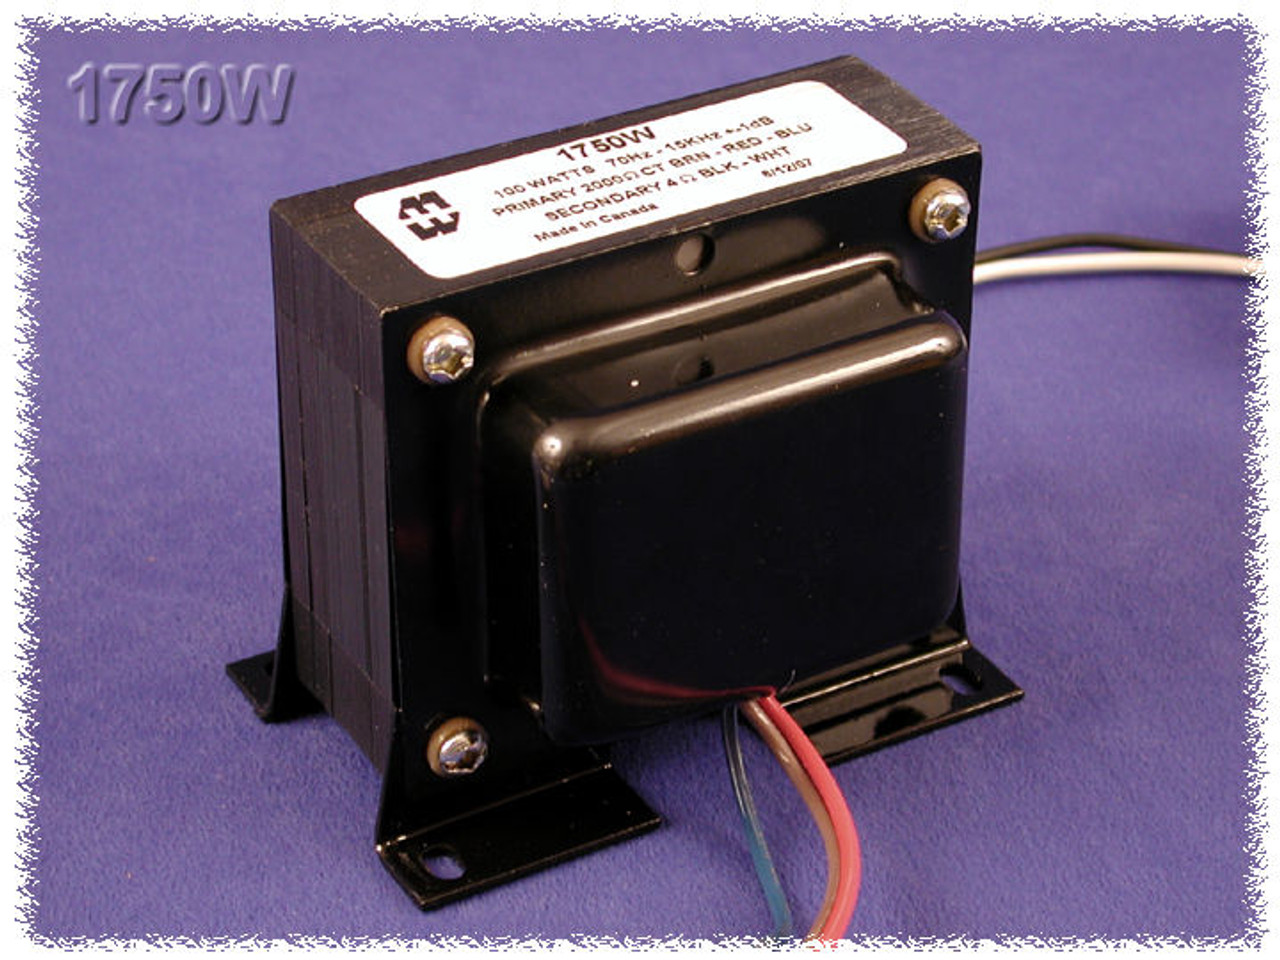 Hammond 1750W - Output Transformer